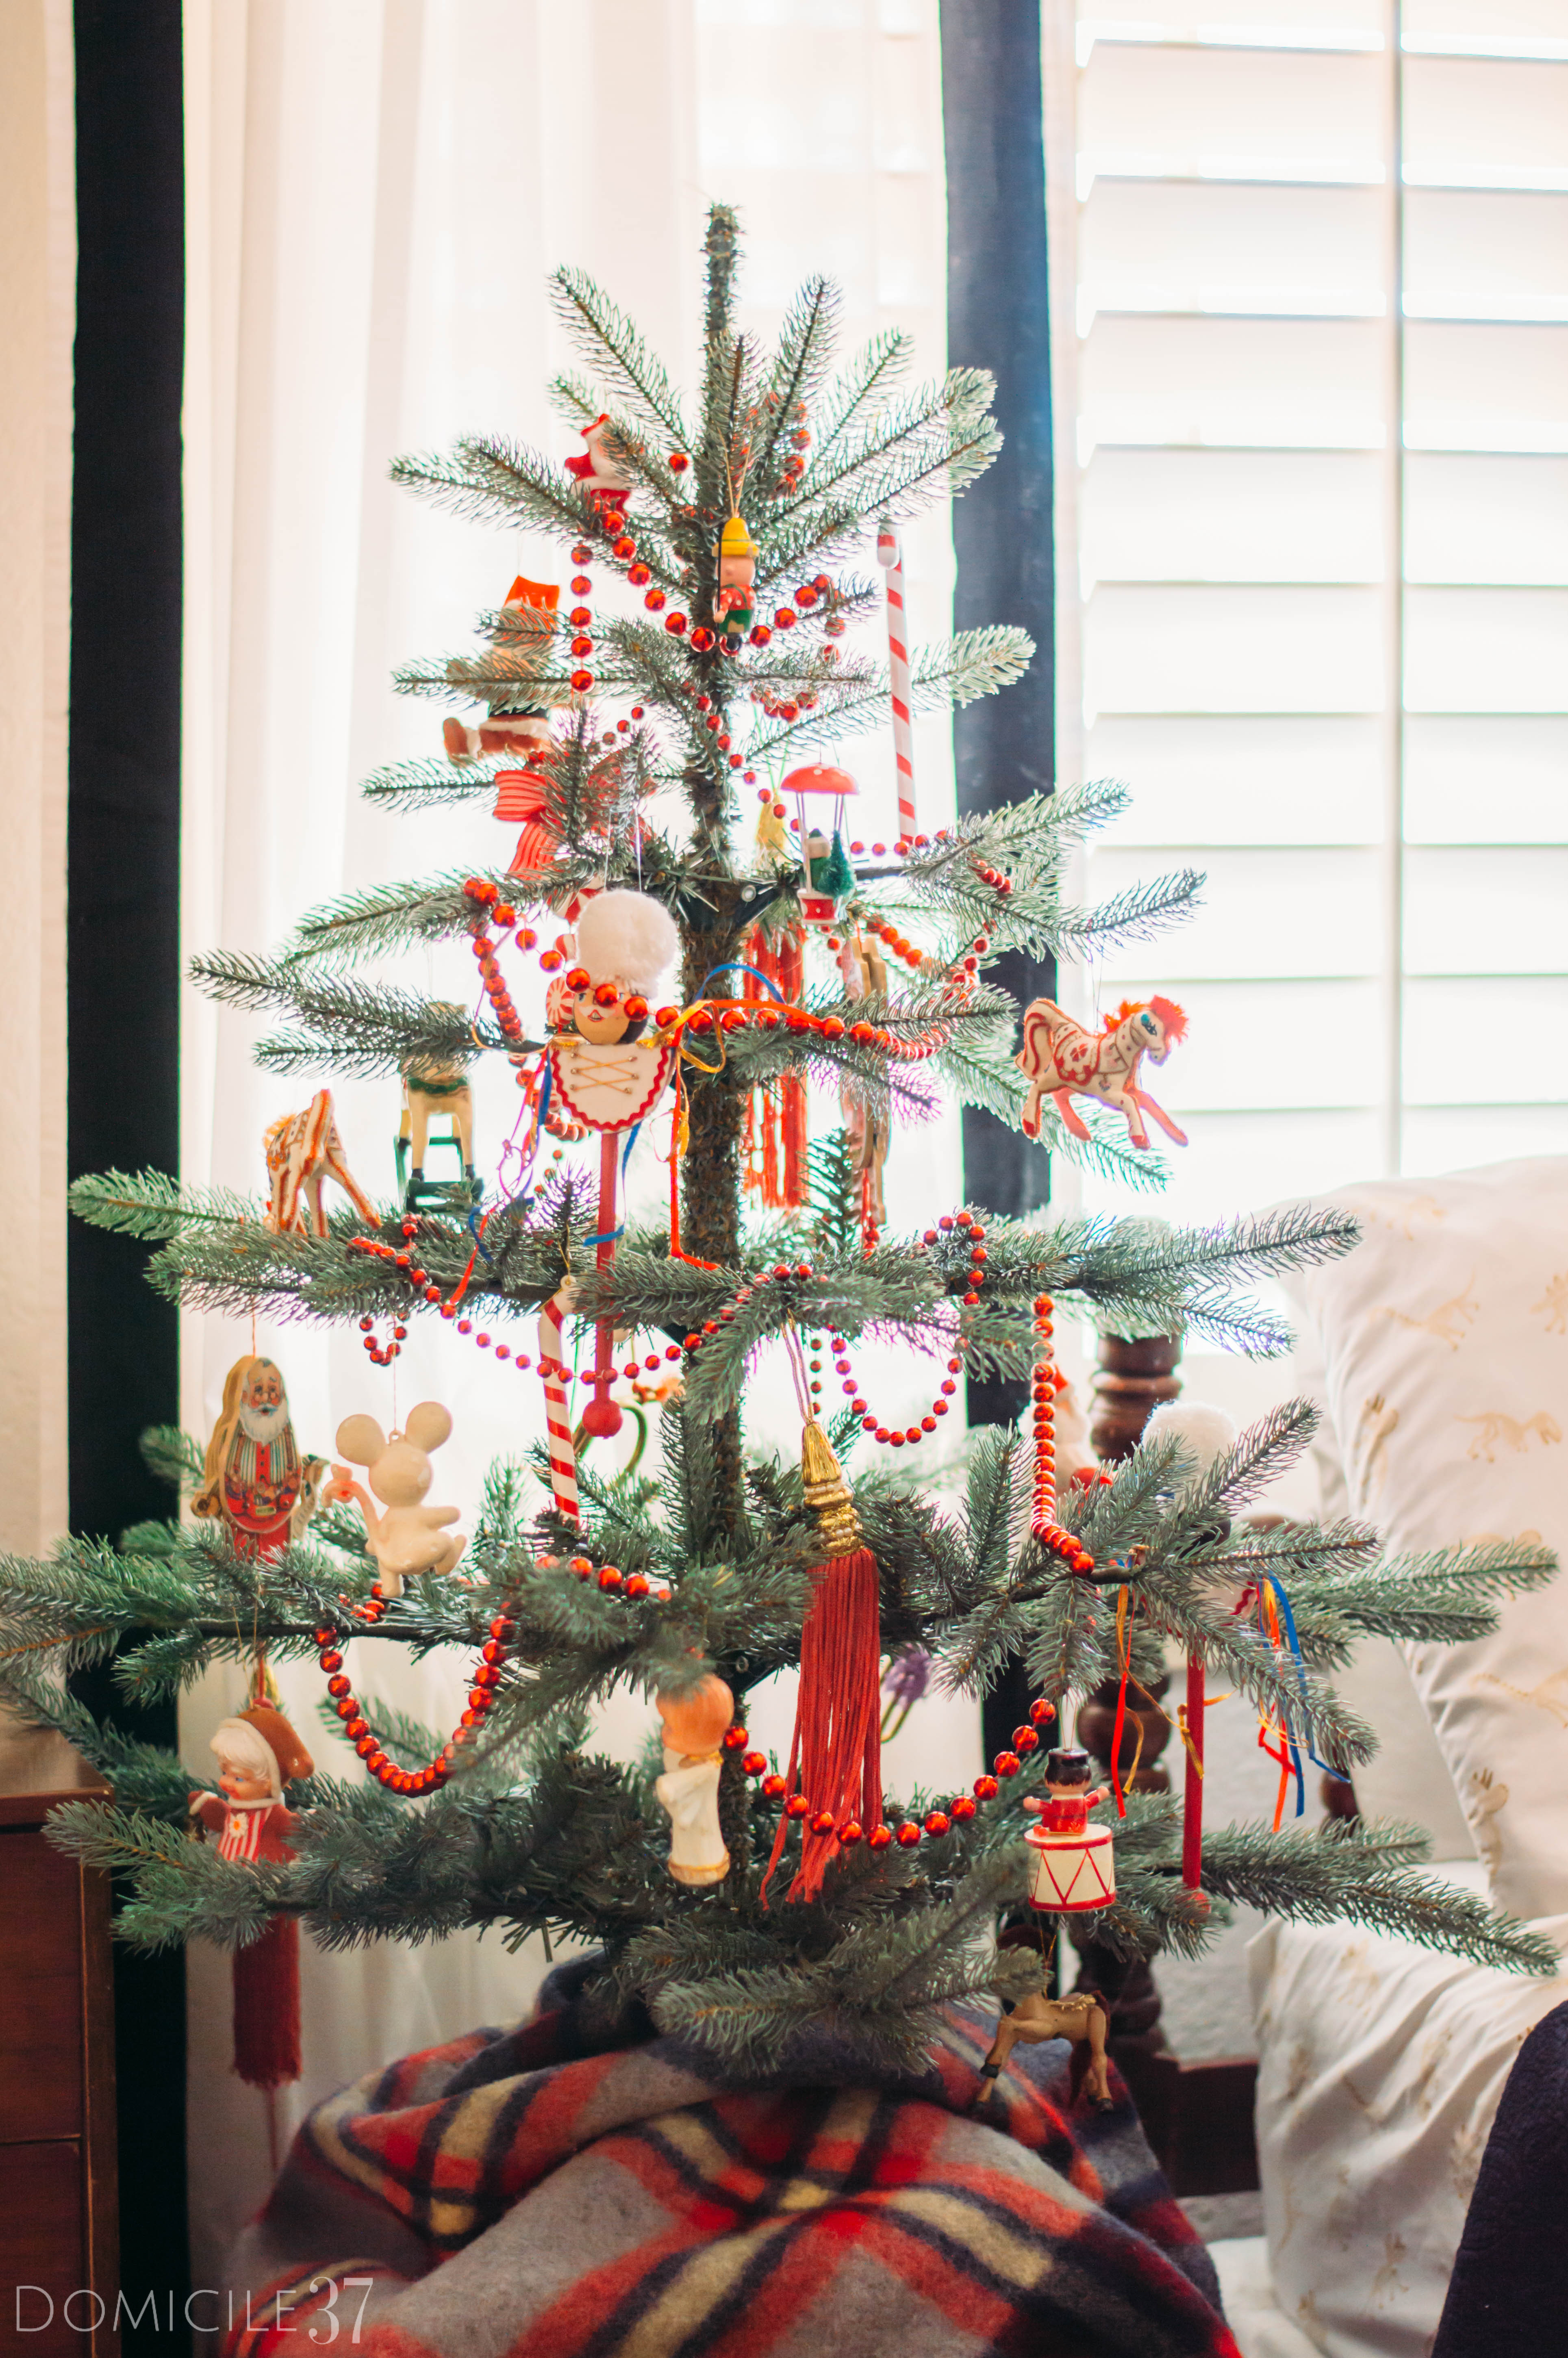 Domicile 37 | Holiday decor | Christmas Decor | Decorating bedroom Christmas | Vintage Christmas | Traditional Christmas decor | Christmas tree | kids Christmas tree